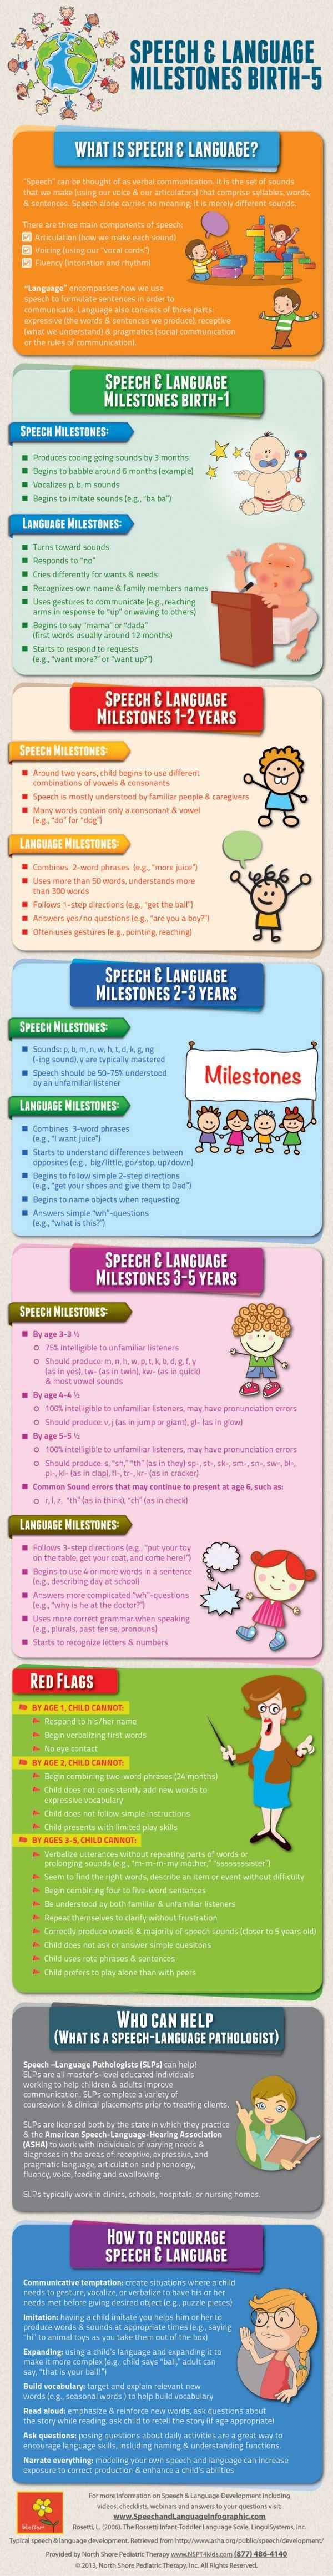 Learn about speech and language milestones: